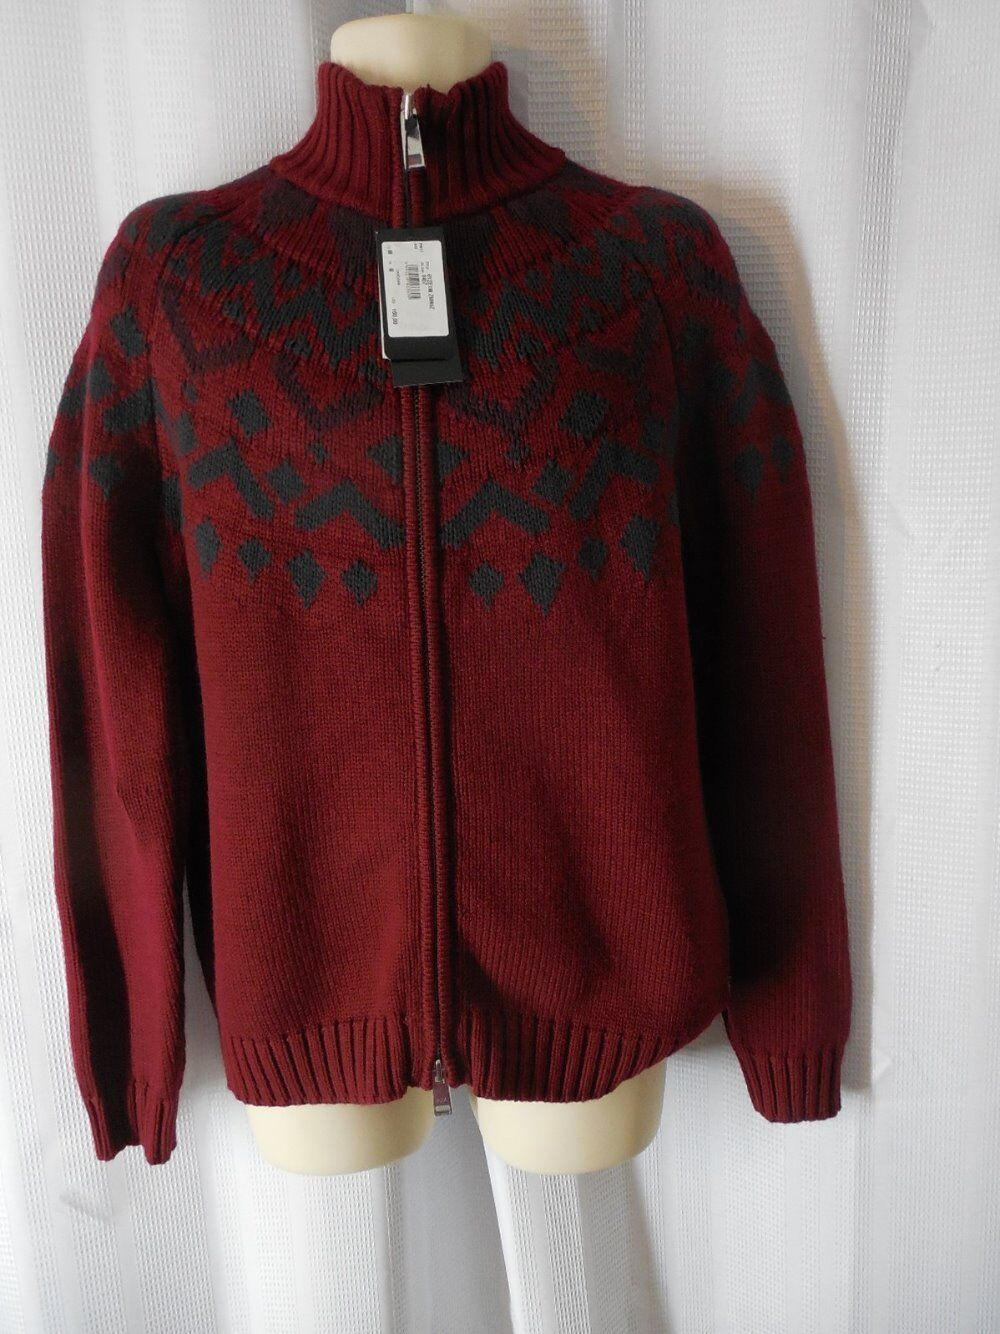 ARMANI EXCHANGE Cardigan Large Maroon Fair Isle Nordic Zip up NWT